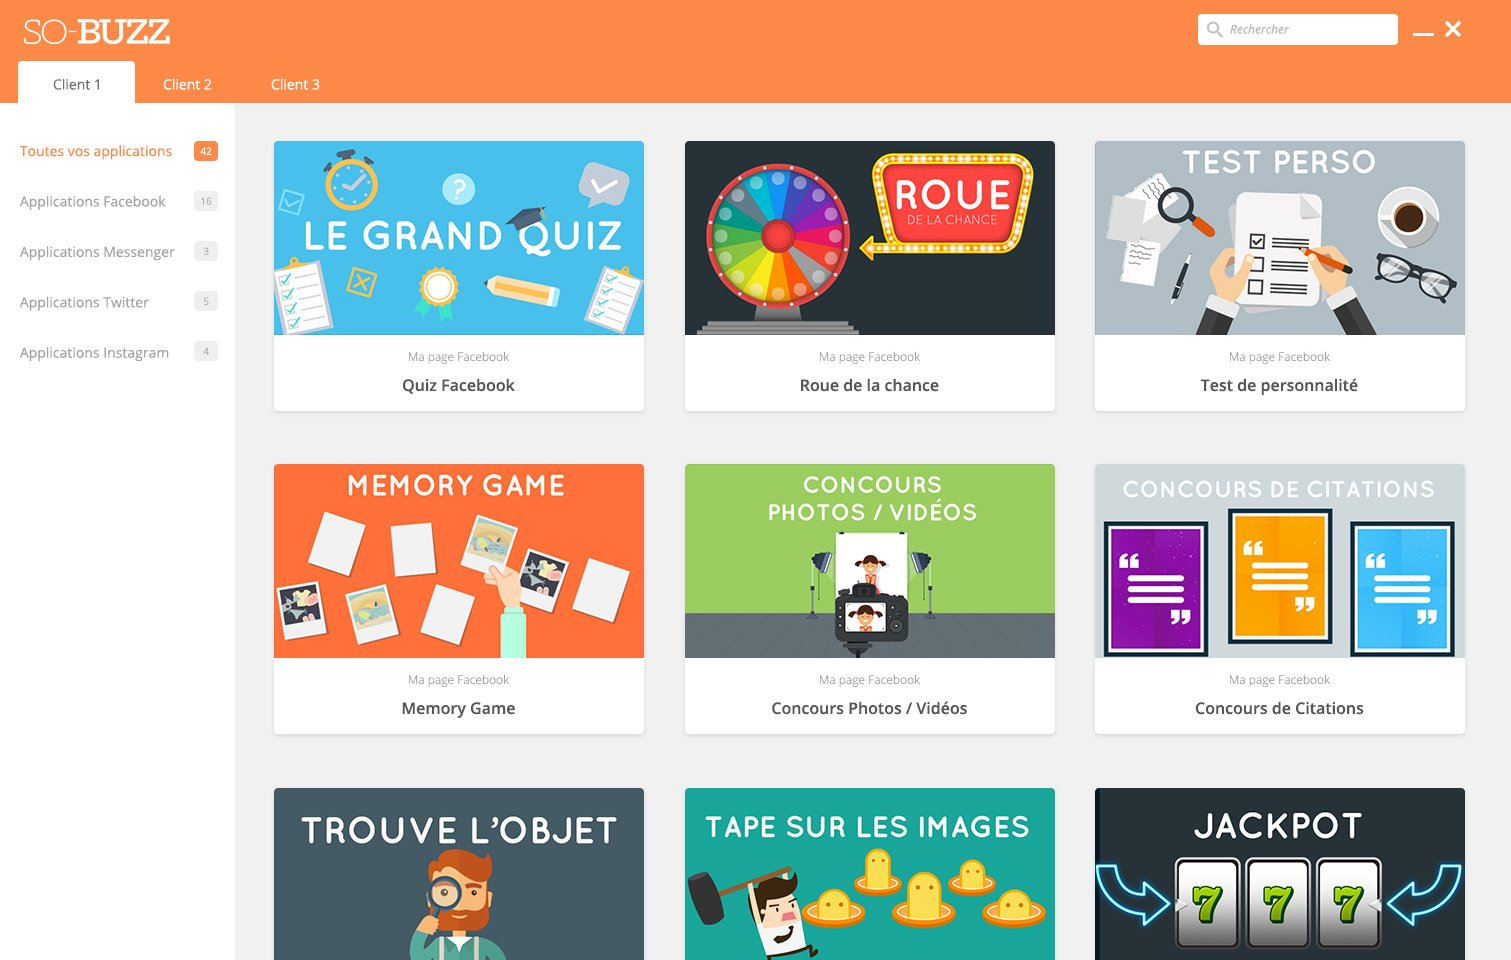 outils-community-manager_so-buzz